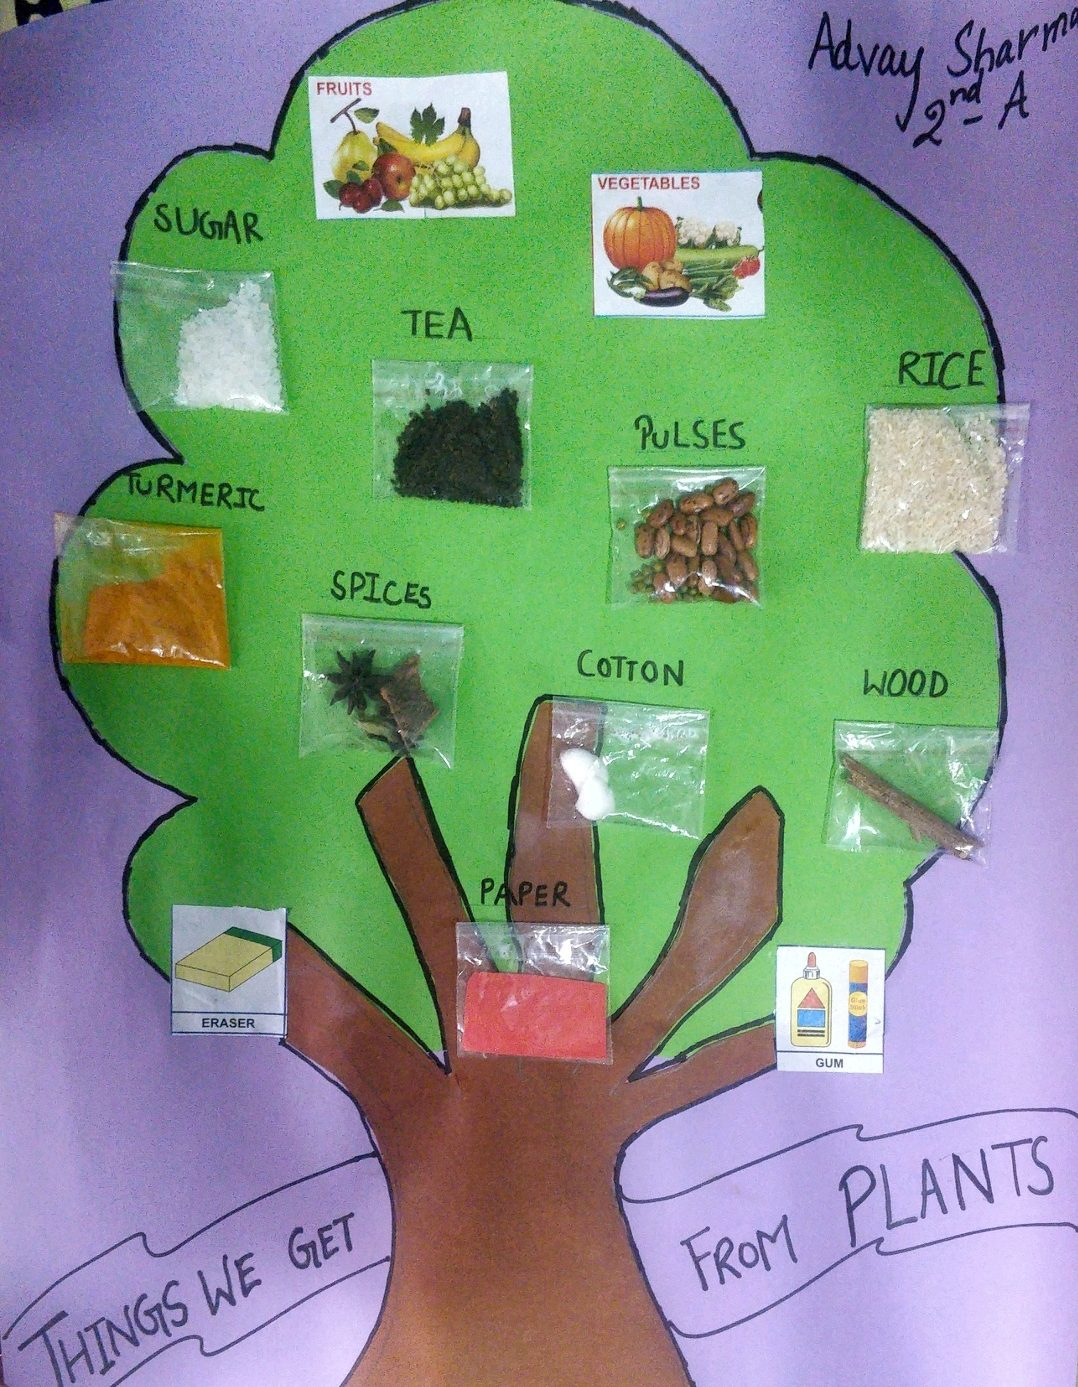 Image Depicting Benefits of Trees